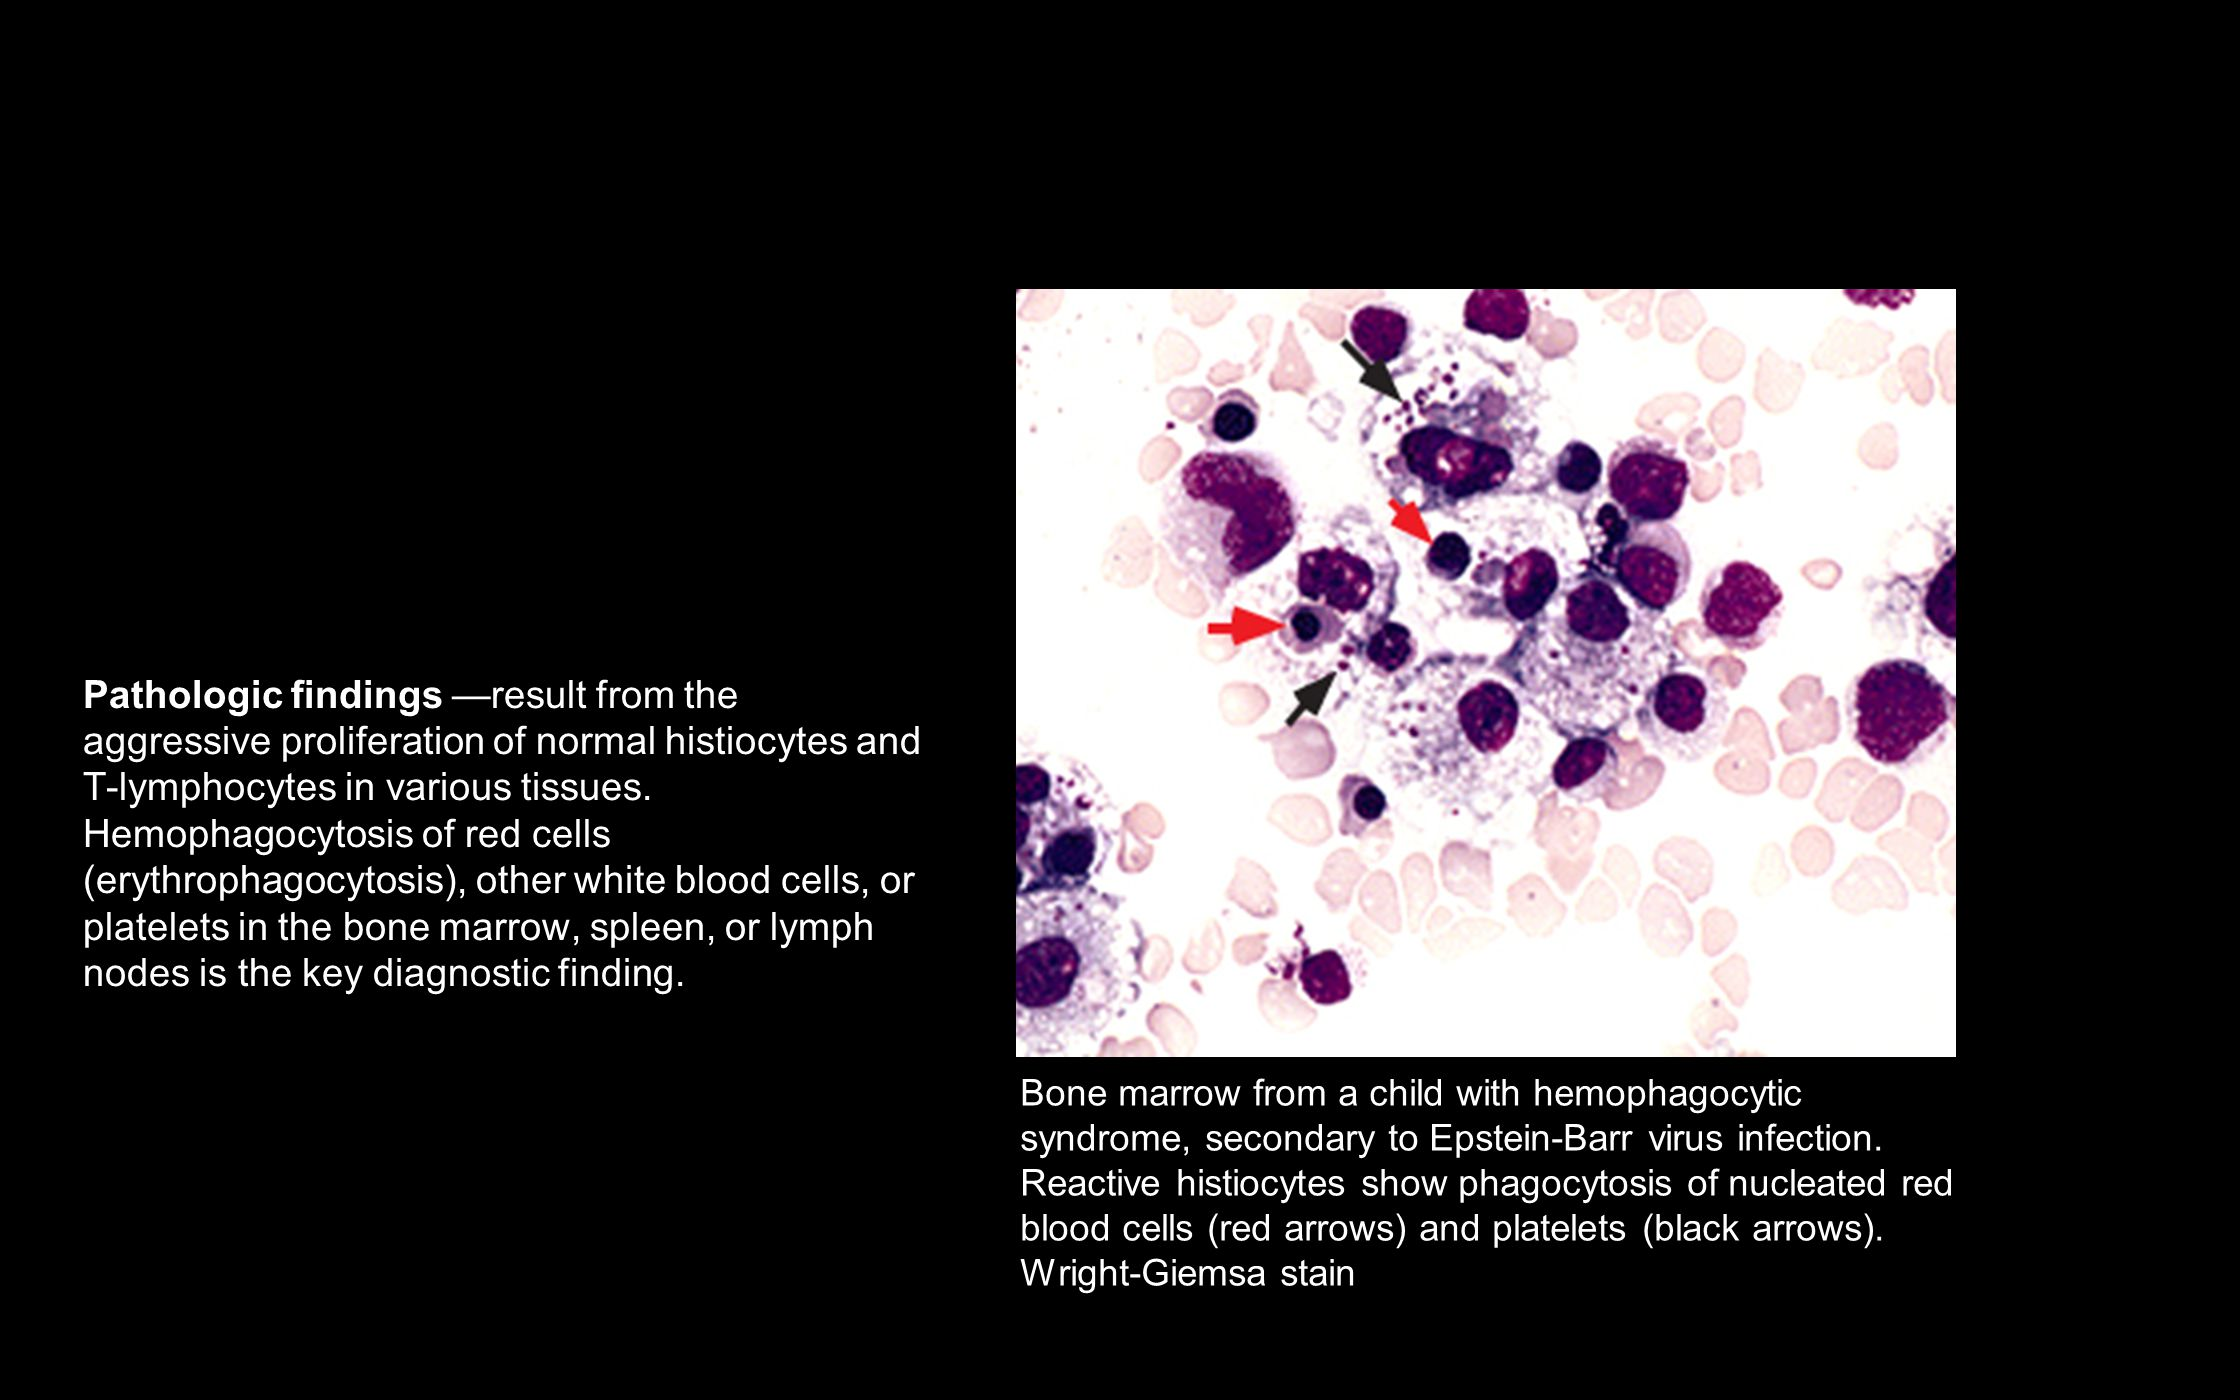 Pathologic findings —result from the aggressive proliferation of normal histiocytes and T-lymphocytes in various tissues. Hemophagocytosis of red cells (erythrophagocytosis), other white blood cells, or platelets in the bone marrow, spleen, or lymph nodes is the key diagnostic finding.